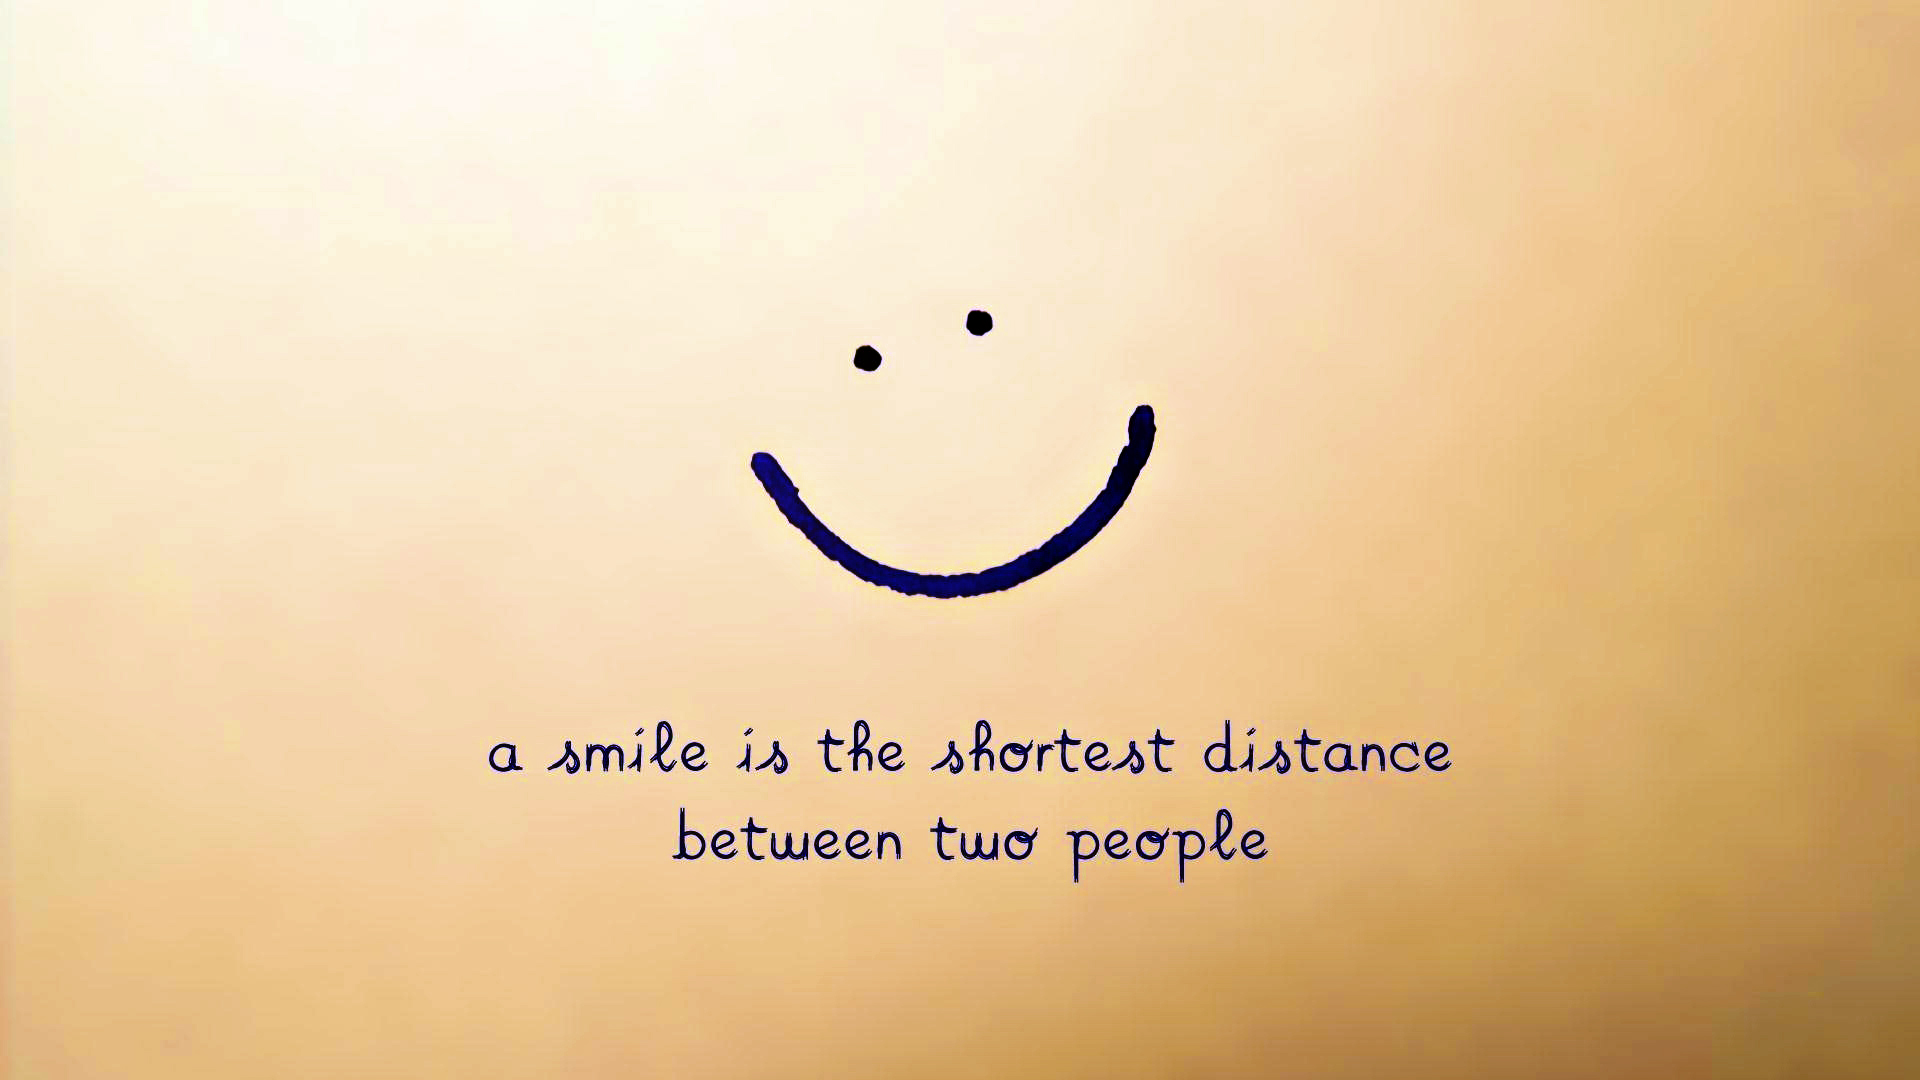 smile-is-the-shortest-distance-between-two-people-quote1